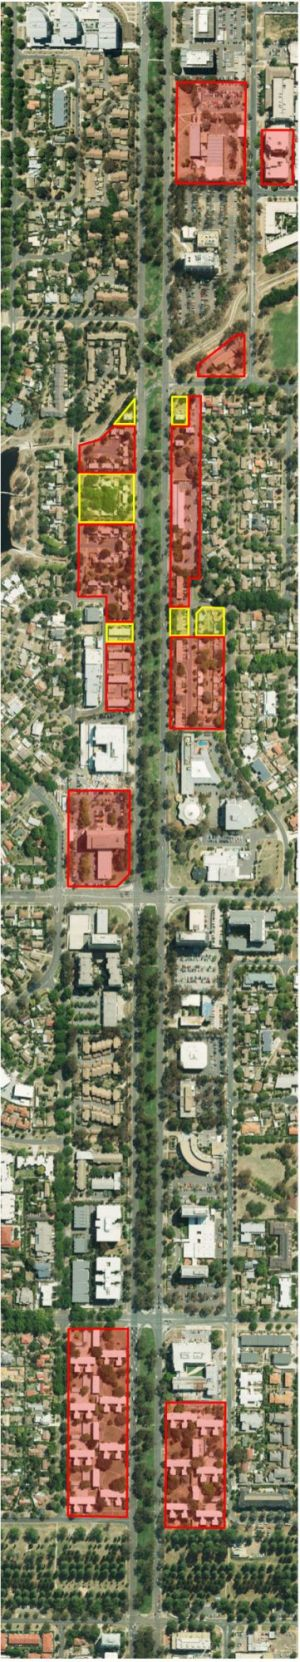 Northbourne Avenue public housing: Buildings marked in red will be demolished, those in yellow will be protected.